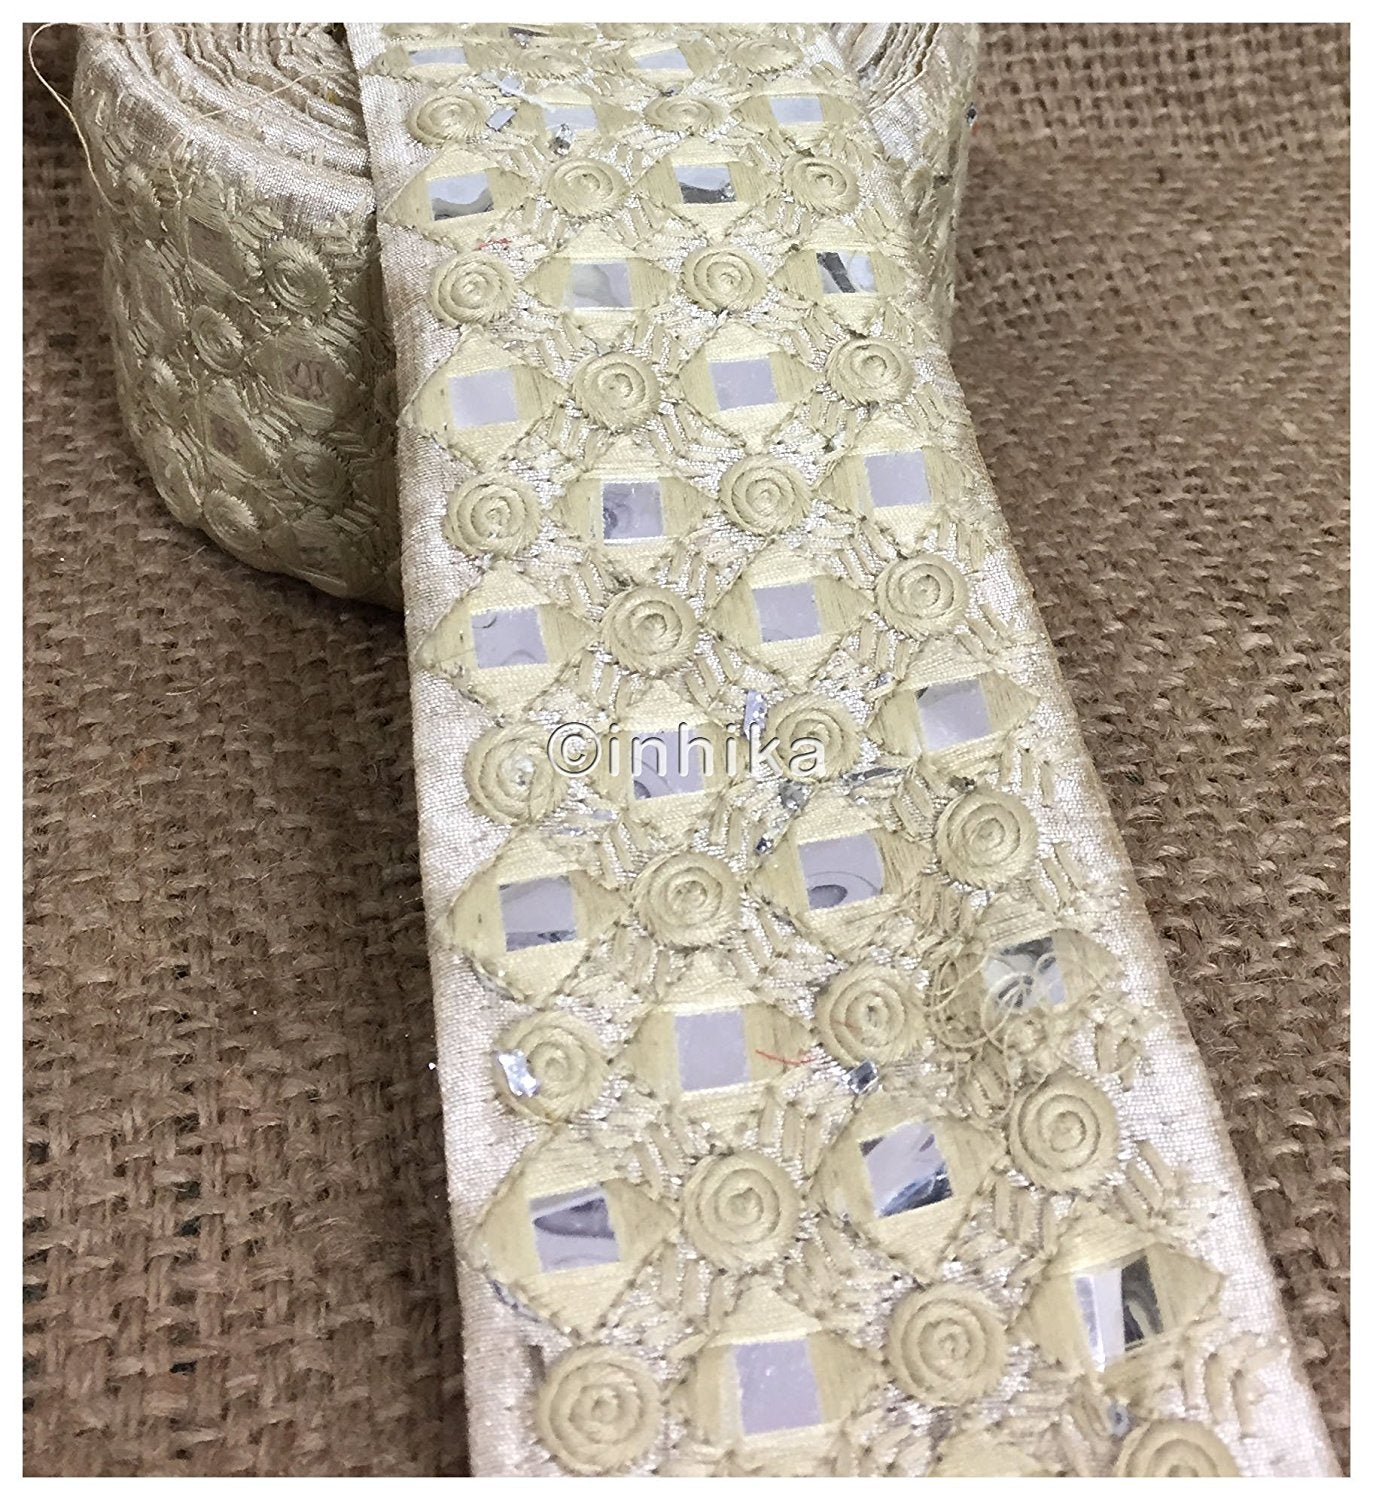 lace trim fabric lace material for dressmaking by the yard Cream, Embroidery, Faux Mirror, 3 Inch Wide material Cotton Mix